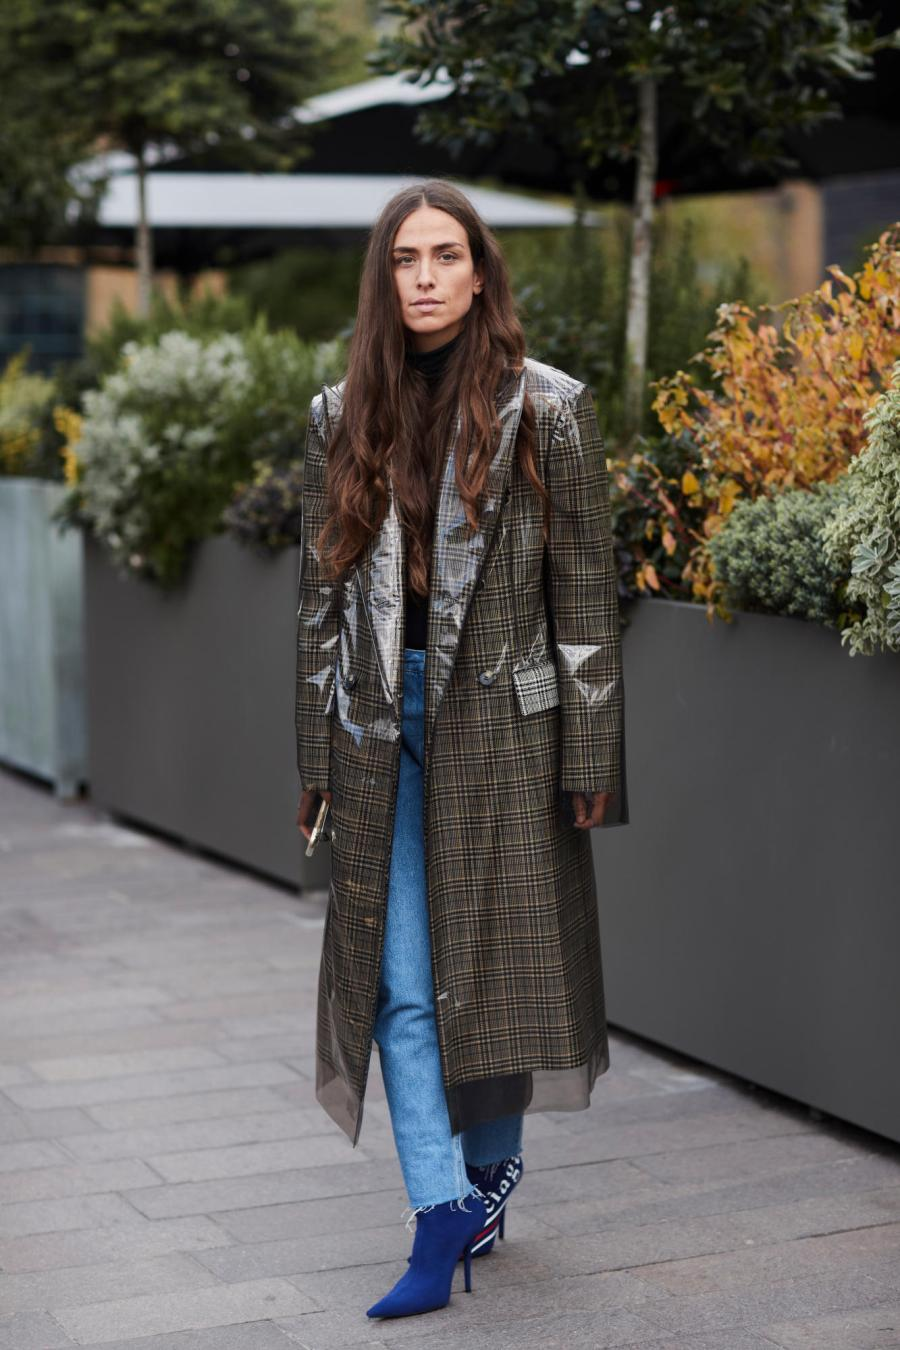 149-london-fashion-week-street-style-spring-2018